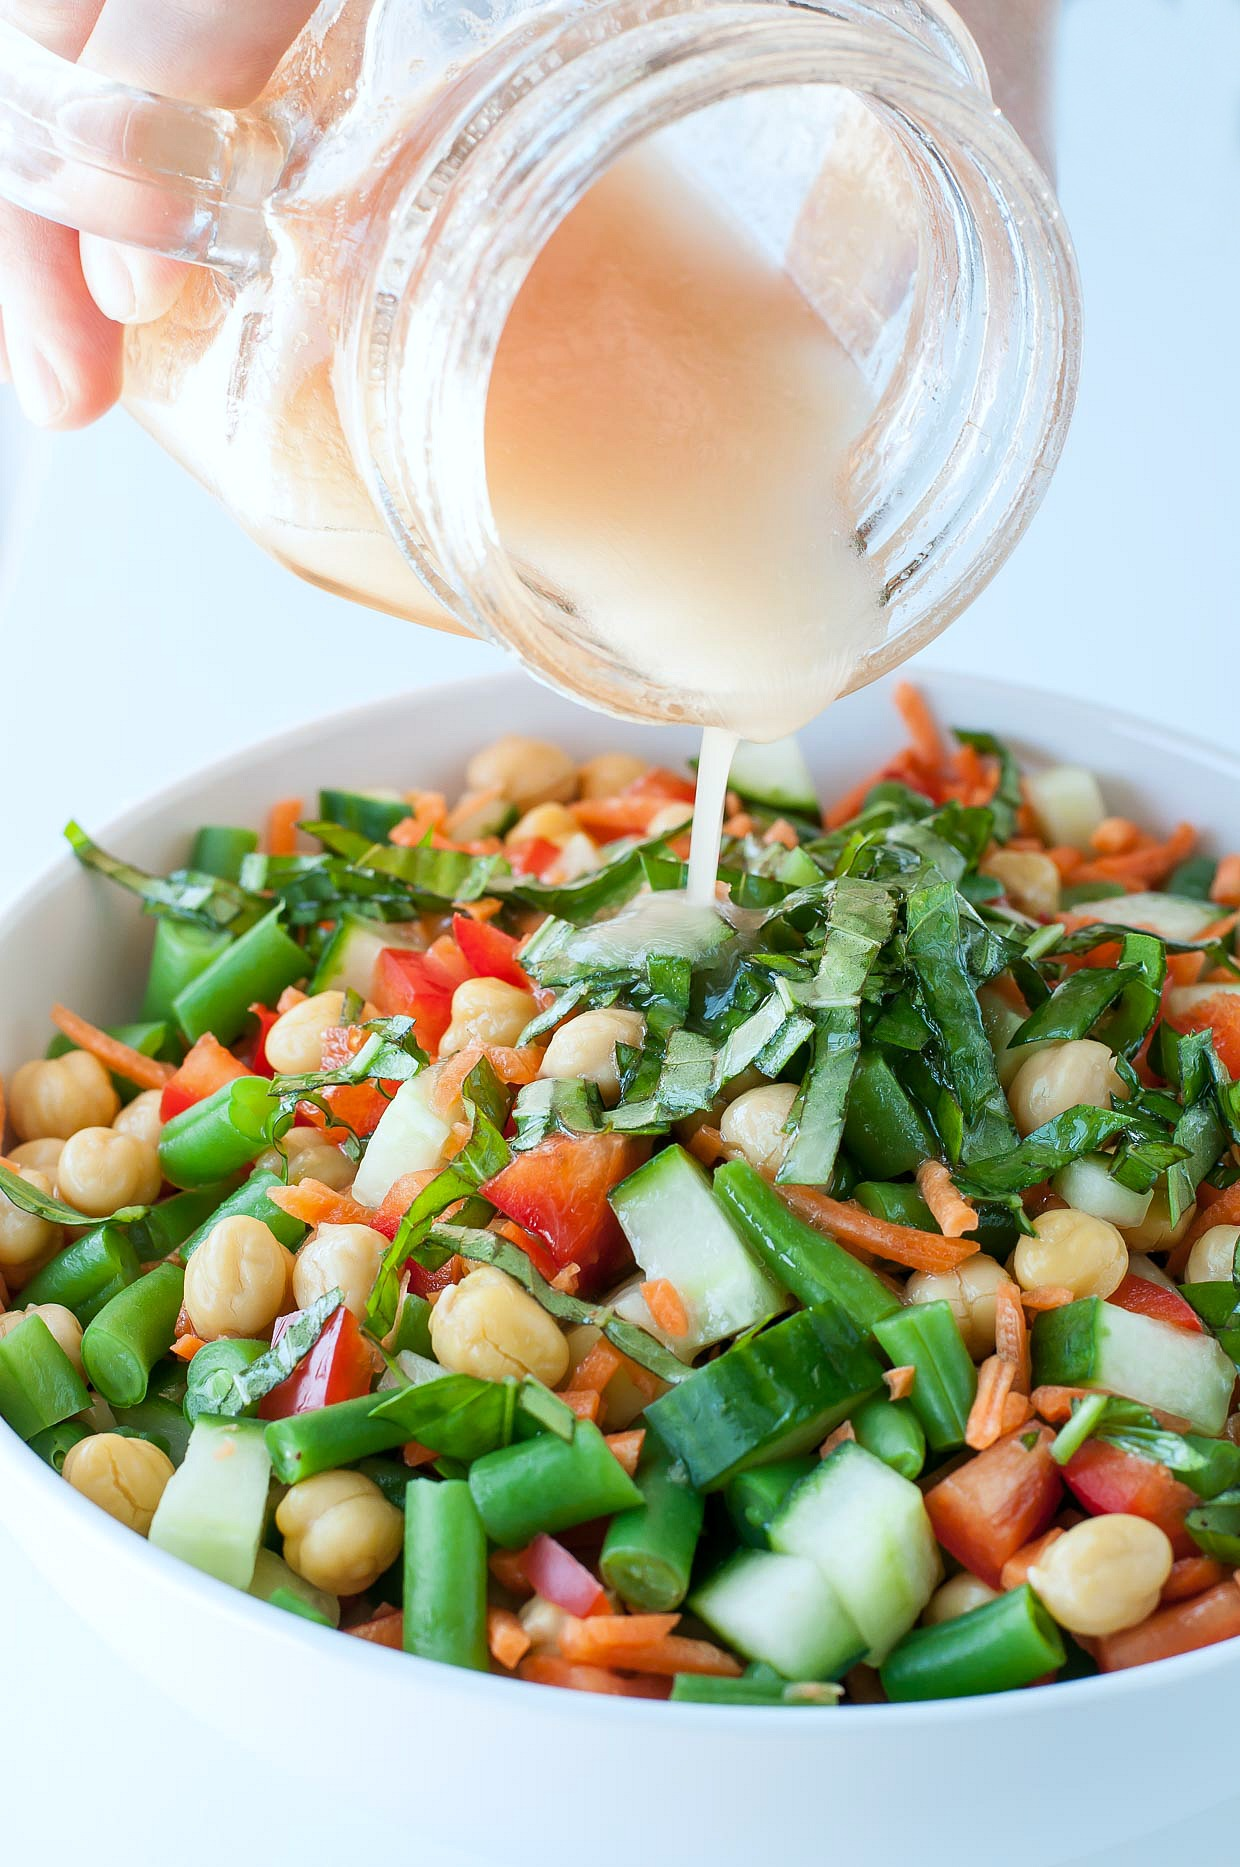 Chickpea Salad with Basil Vinaigrette Dressing